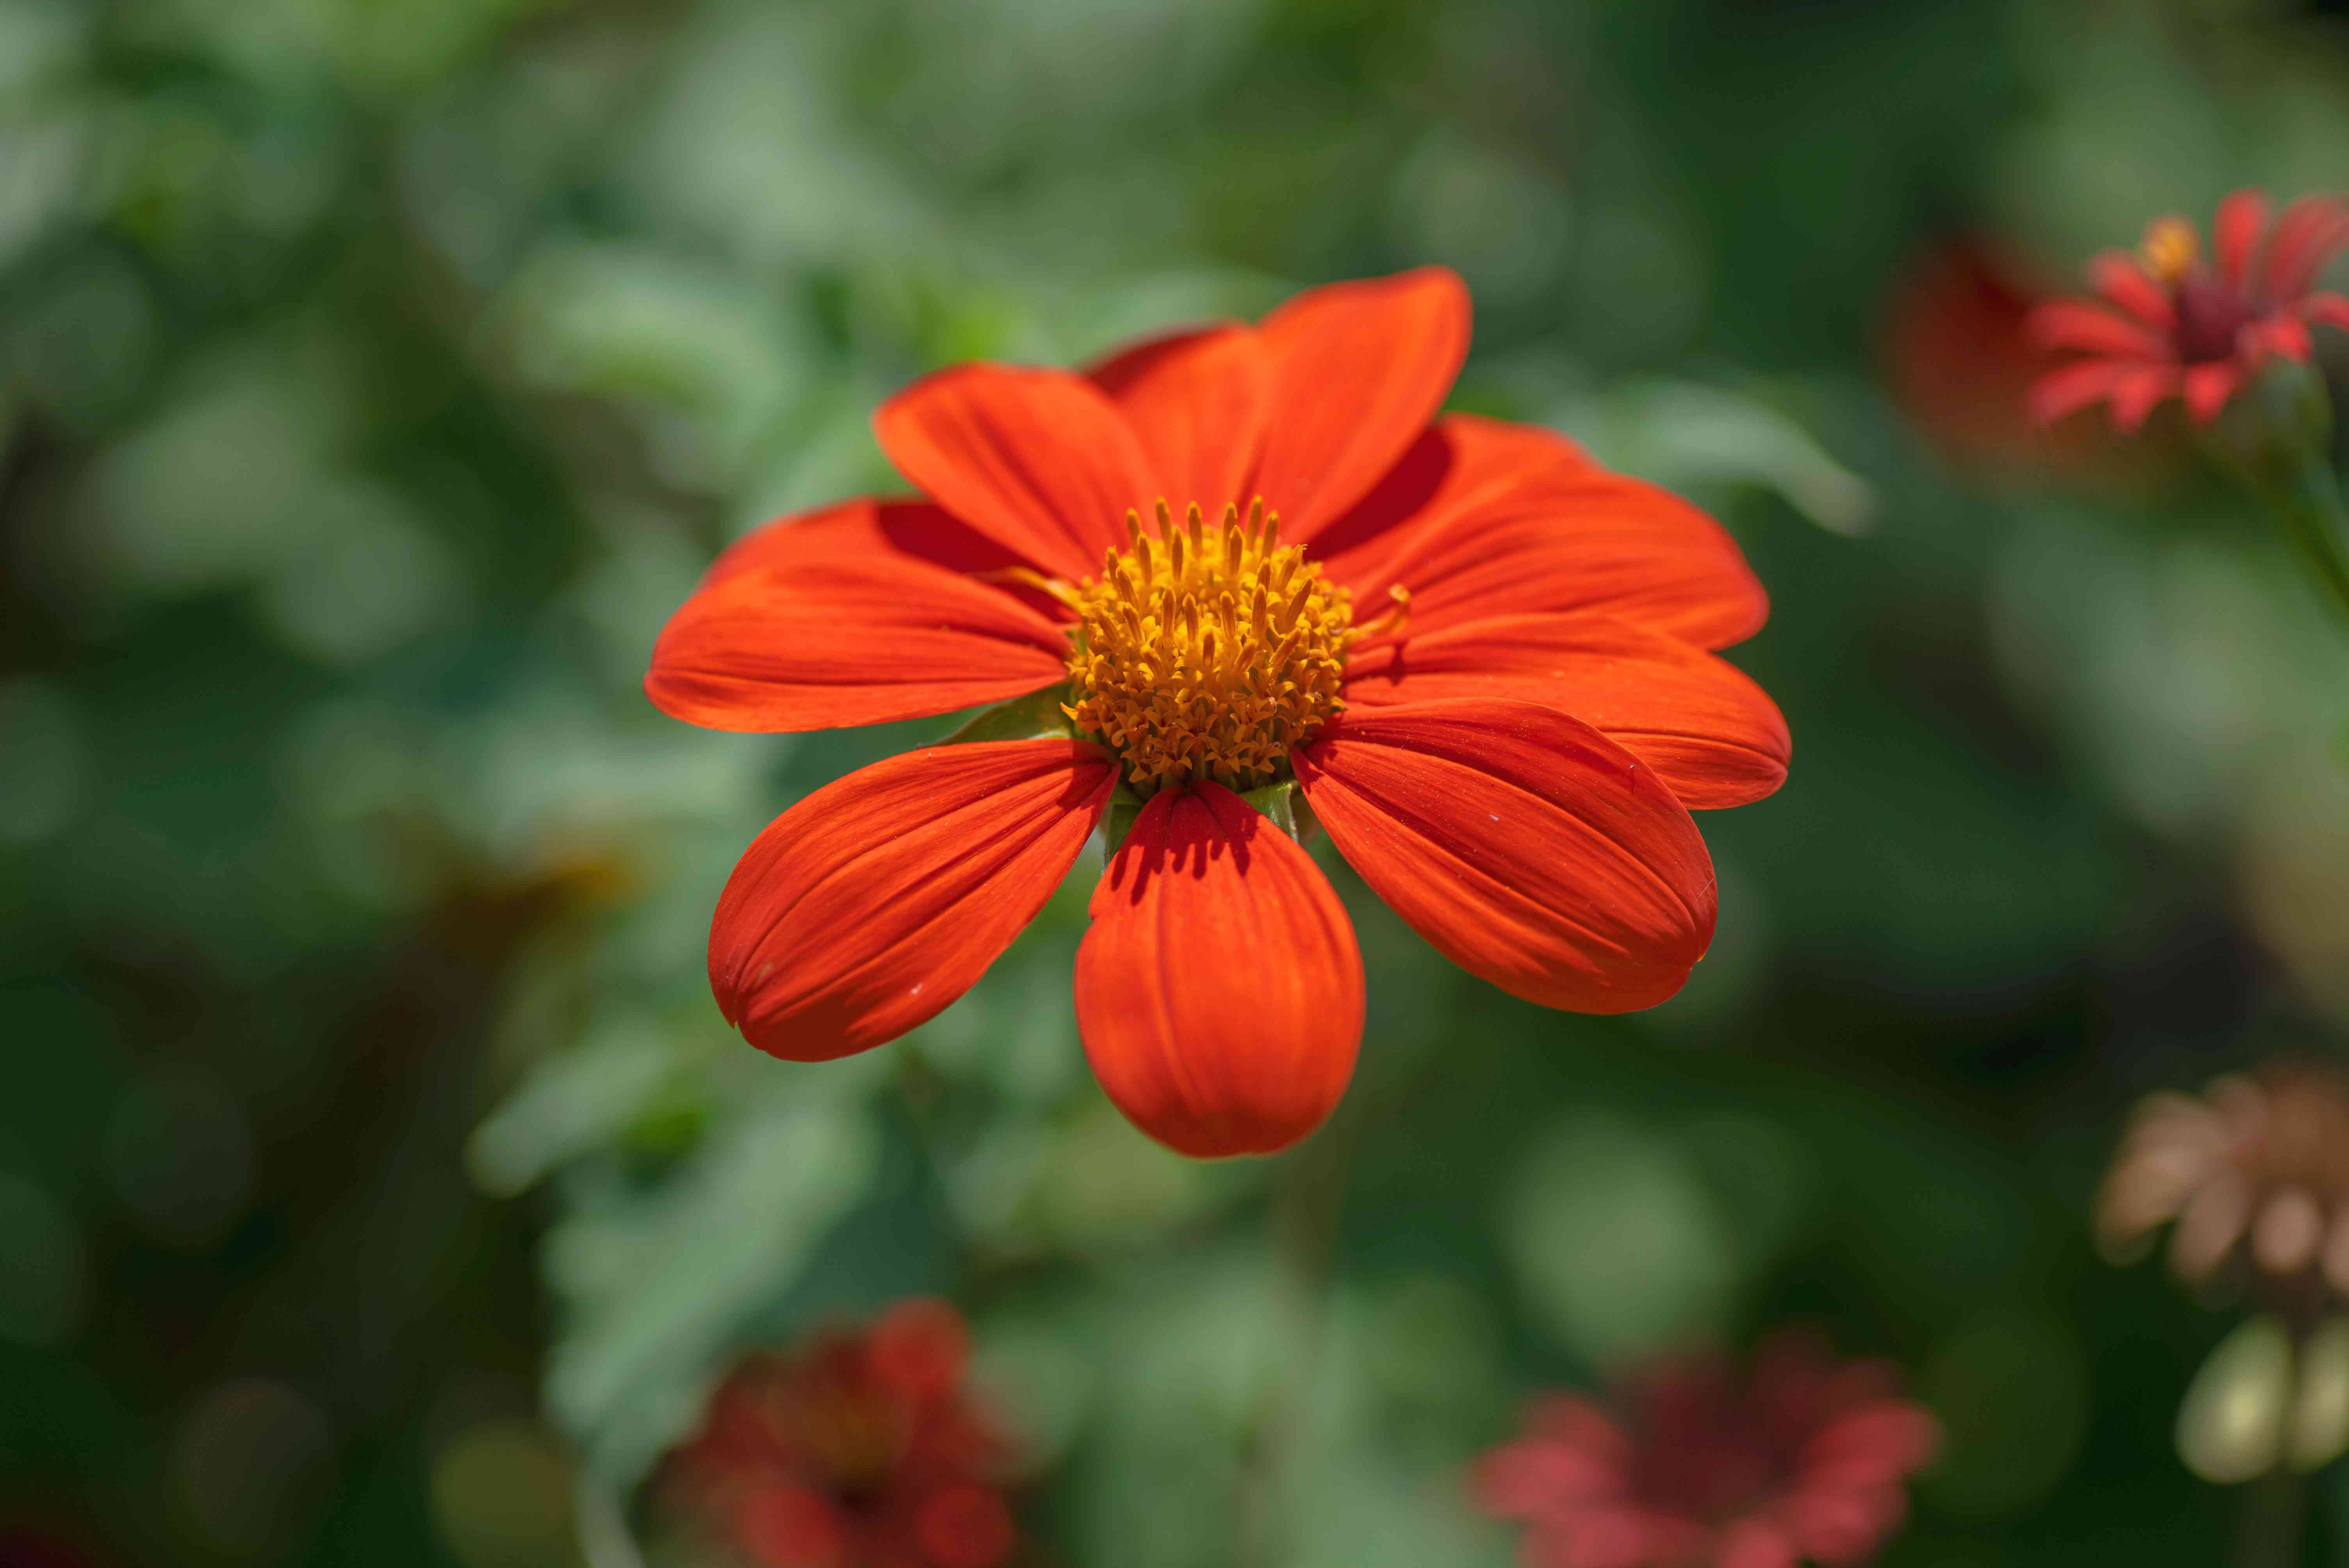 Mexican flower with bright orange colored petals in garden closeup